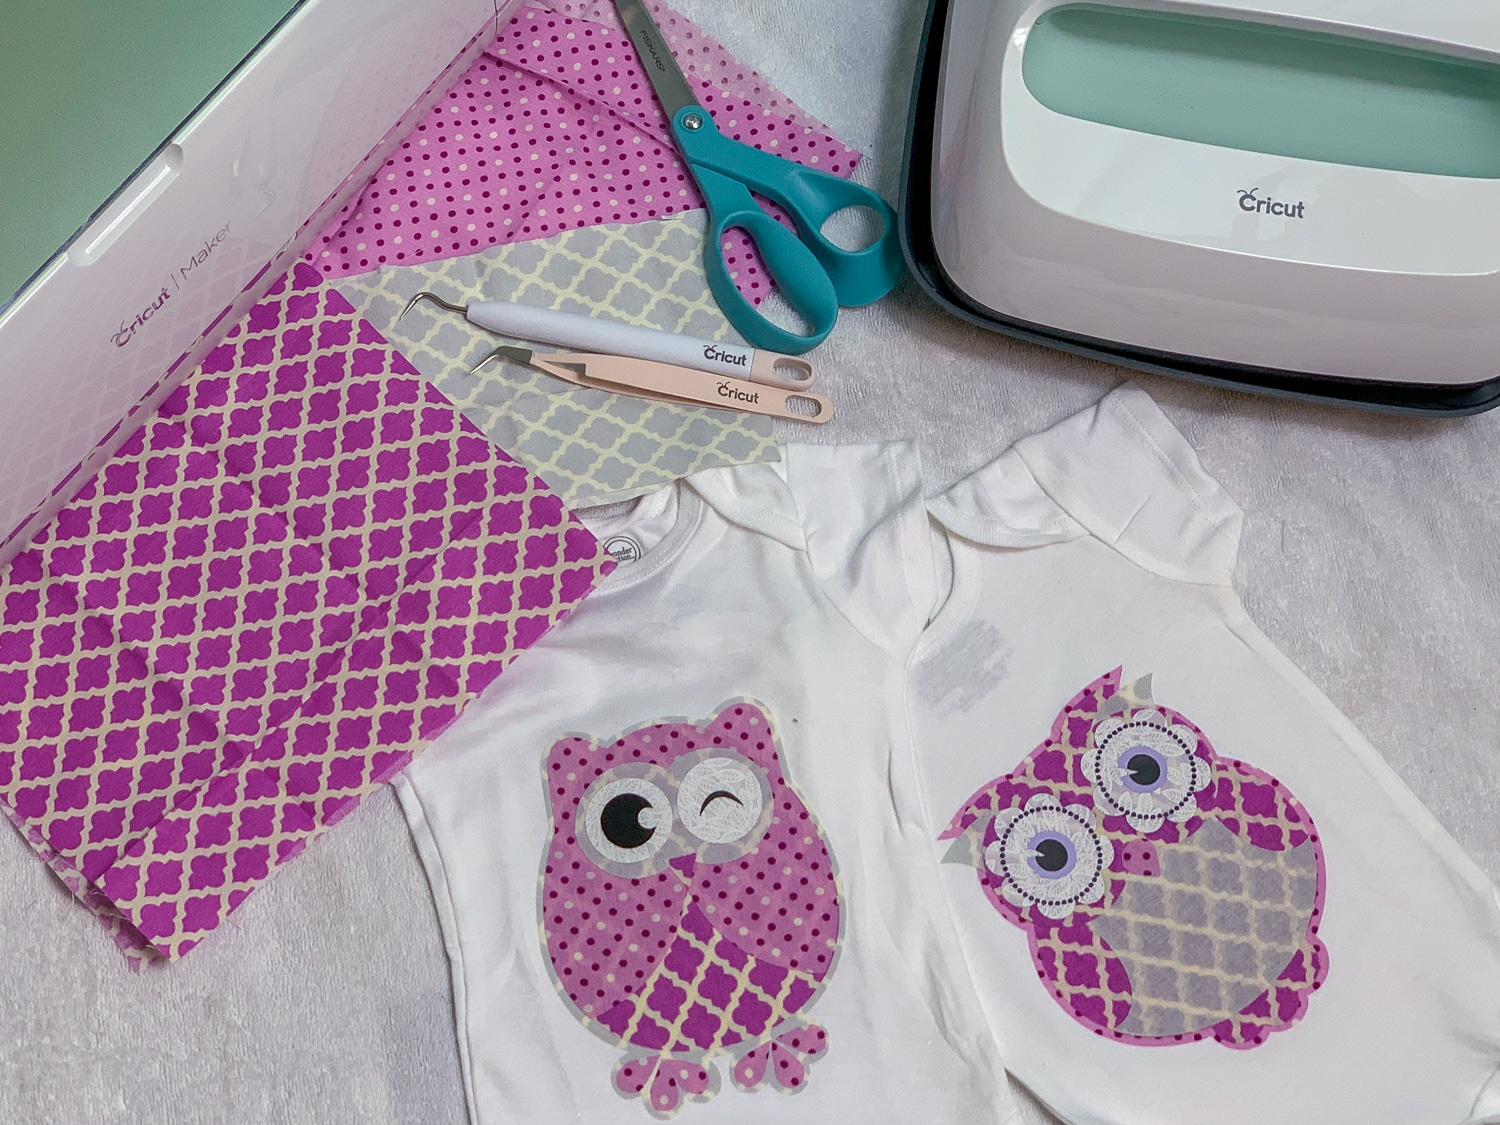 top view of cricut maker with fabric pieces and easy press 2 to make owl fabric appliques